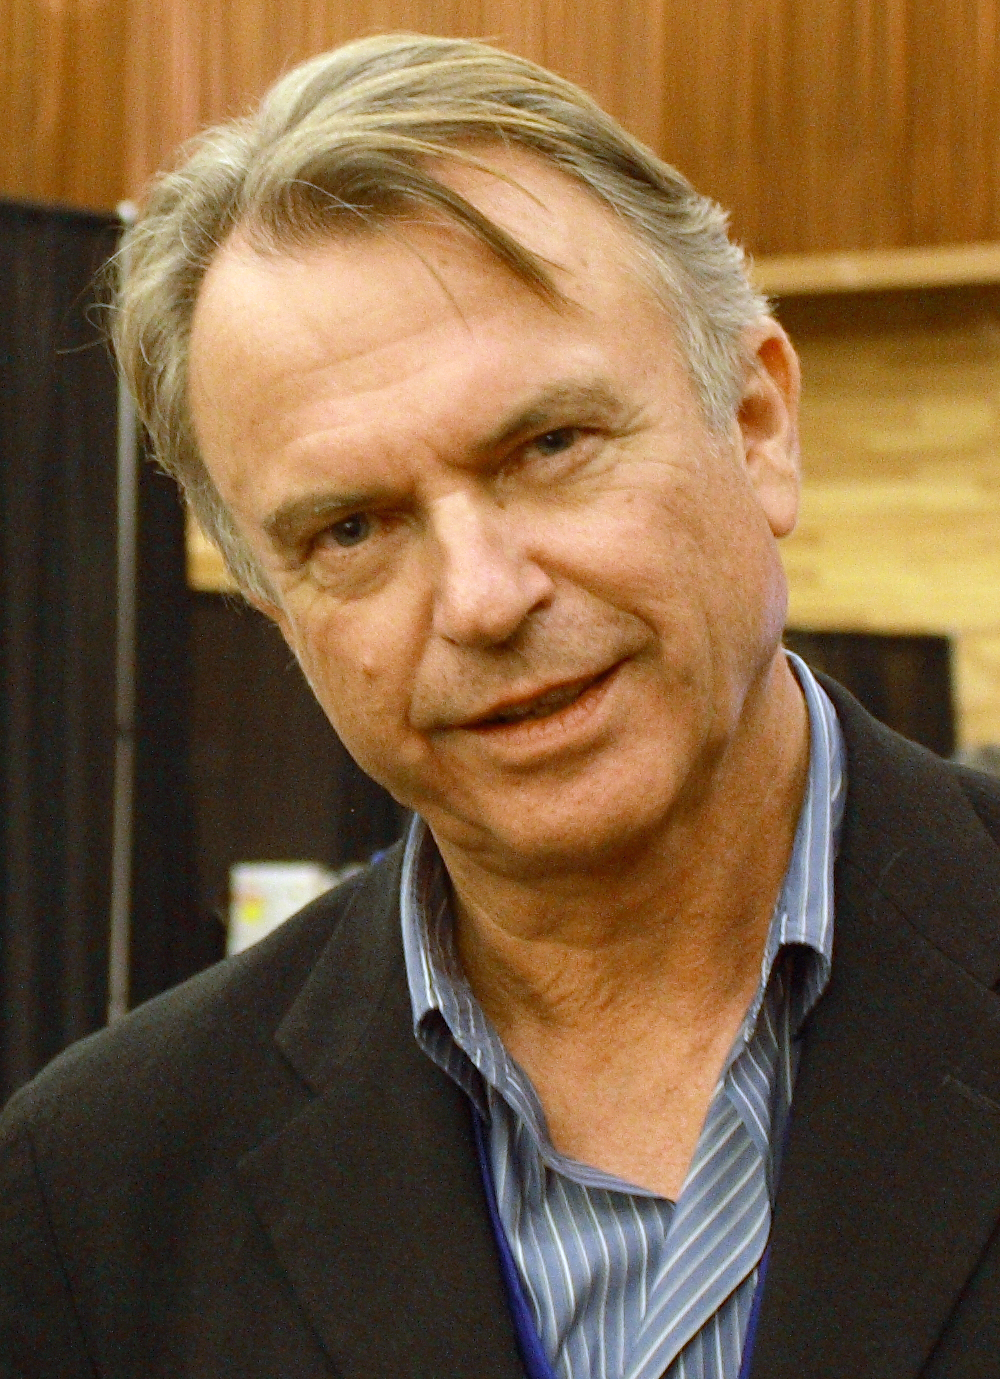 https://upload.wikimedia.org/wikipedia/commons/6/61/Sam_Neill_2010.jpg